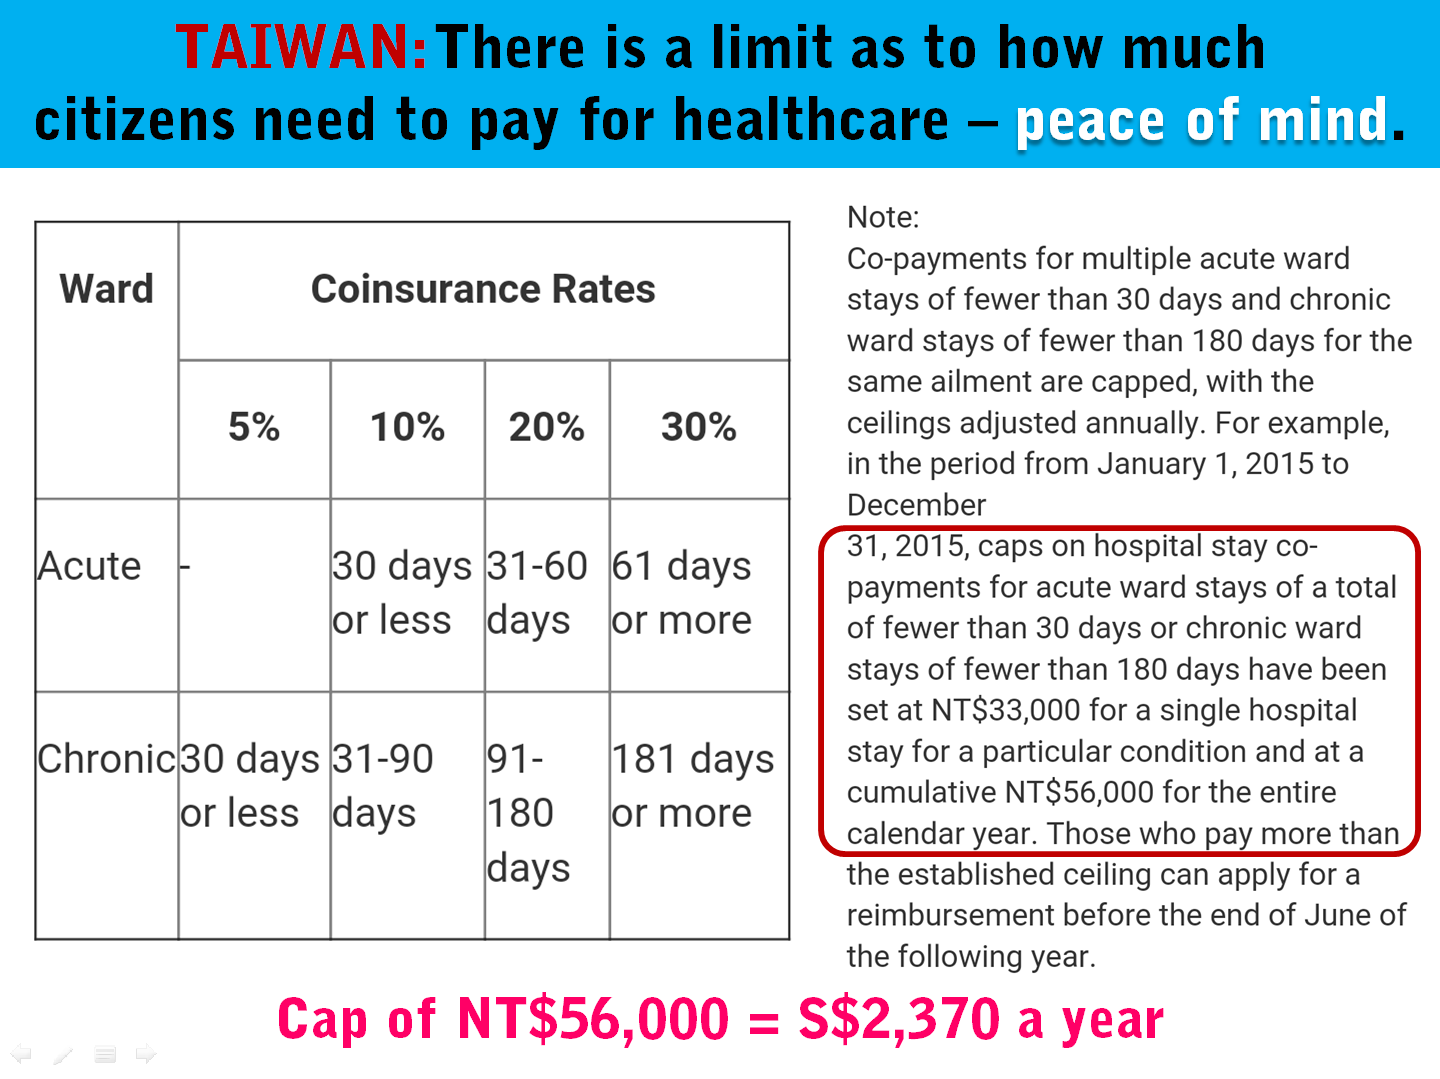 2 Taiwan Healthcare Co-Payment Limit.png